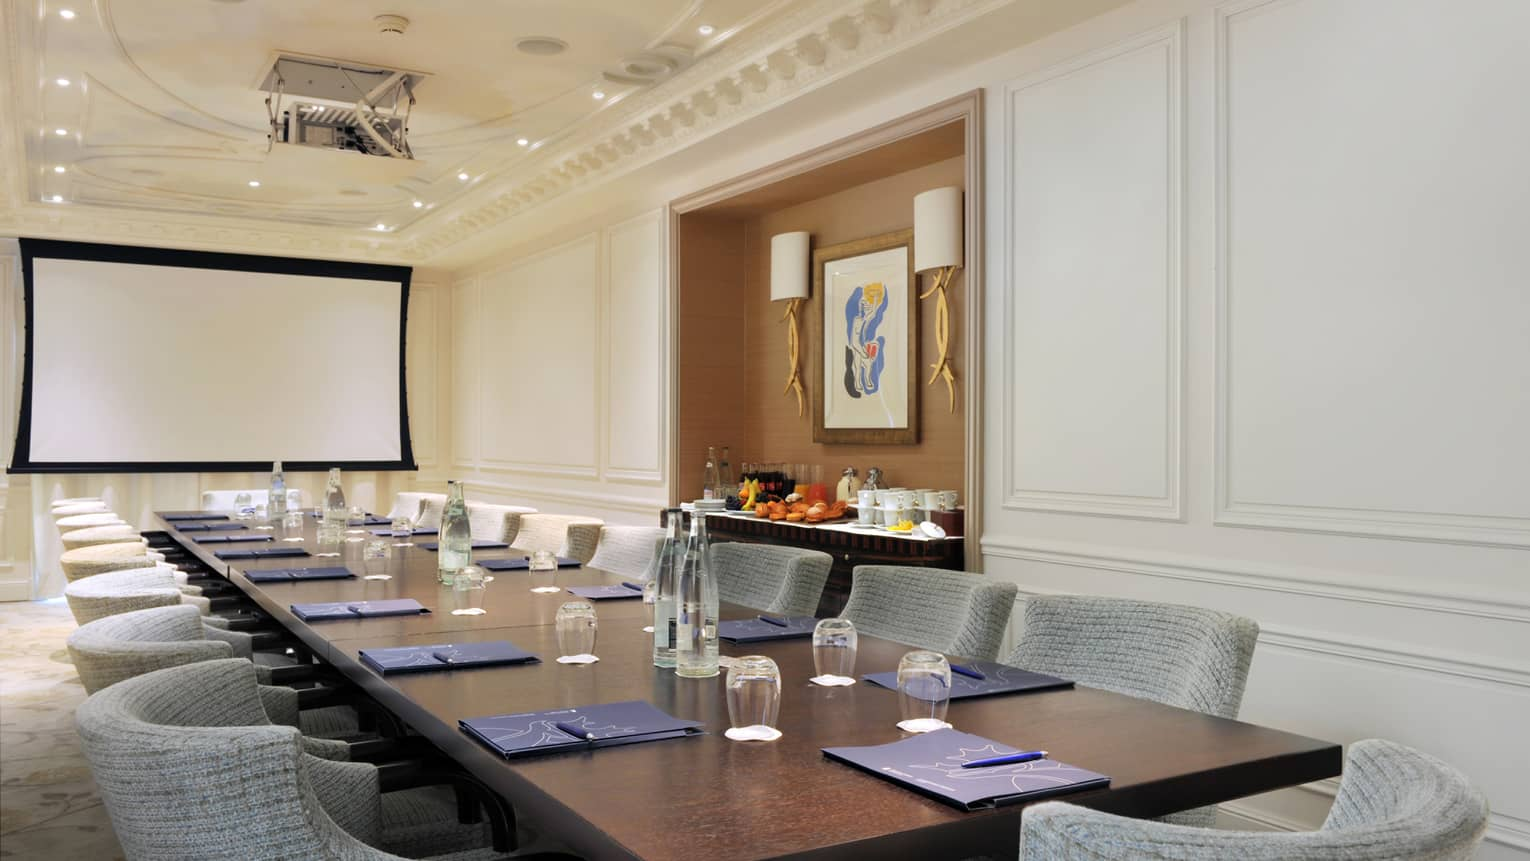 Salon le cap meeting room with grey chairs around large wood boardroom table, screen